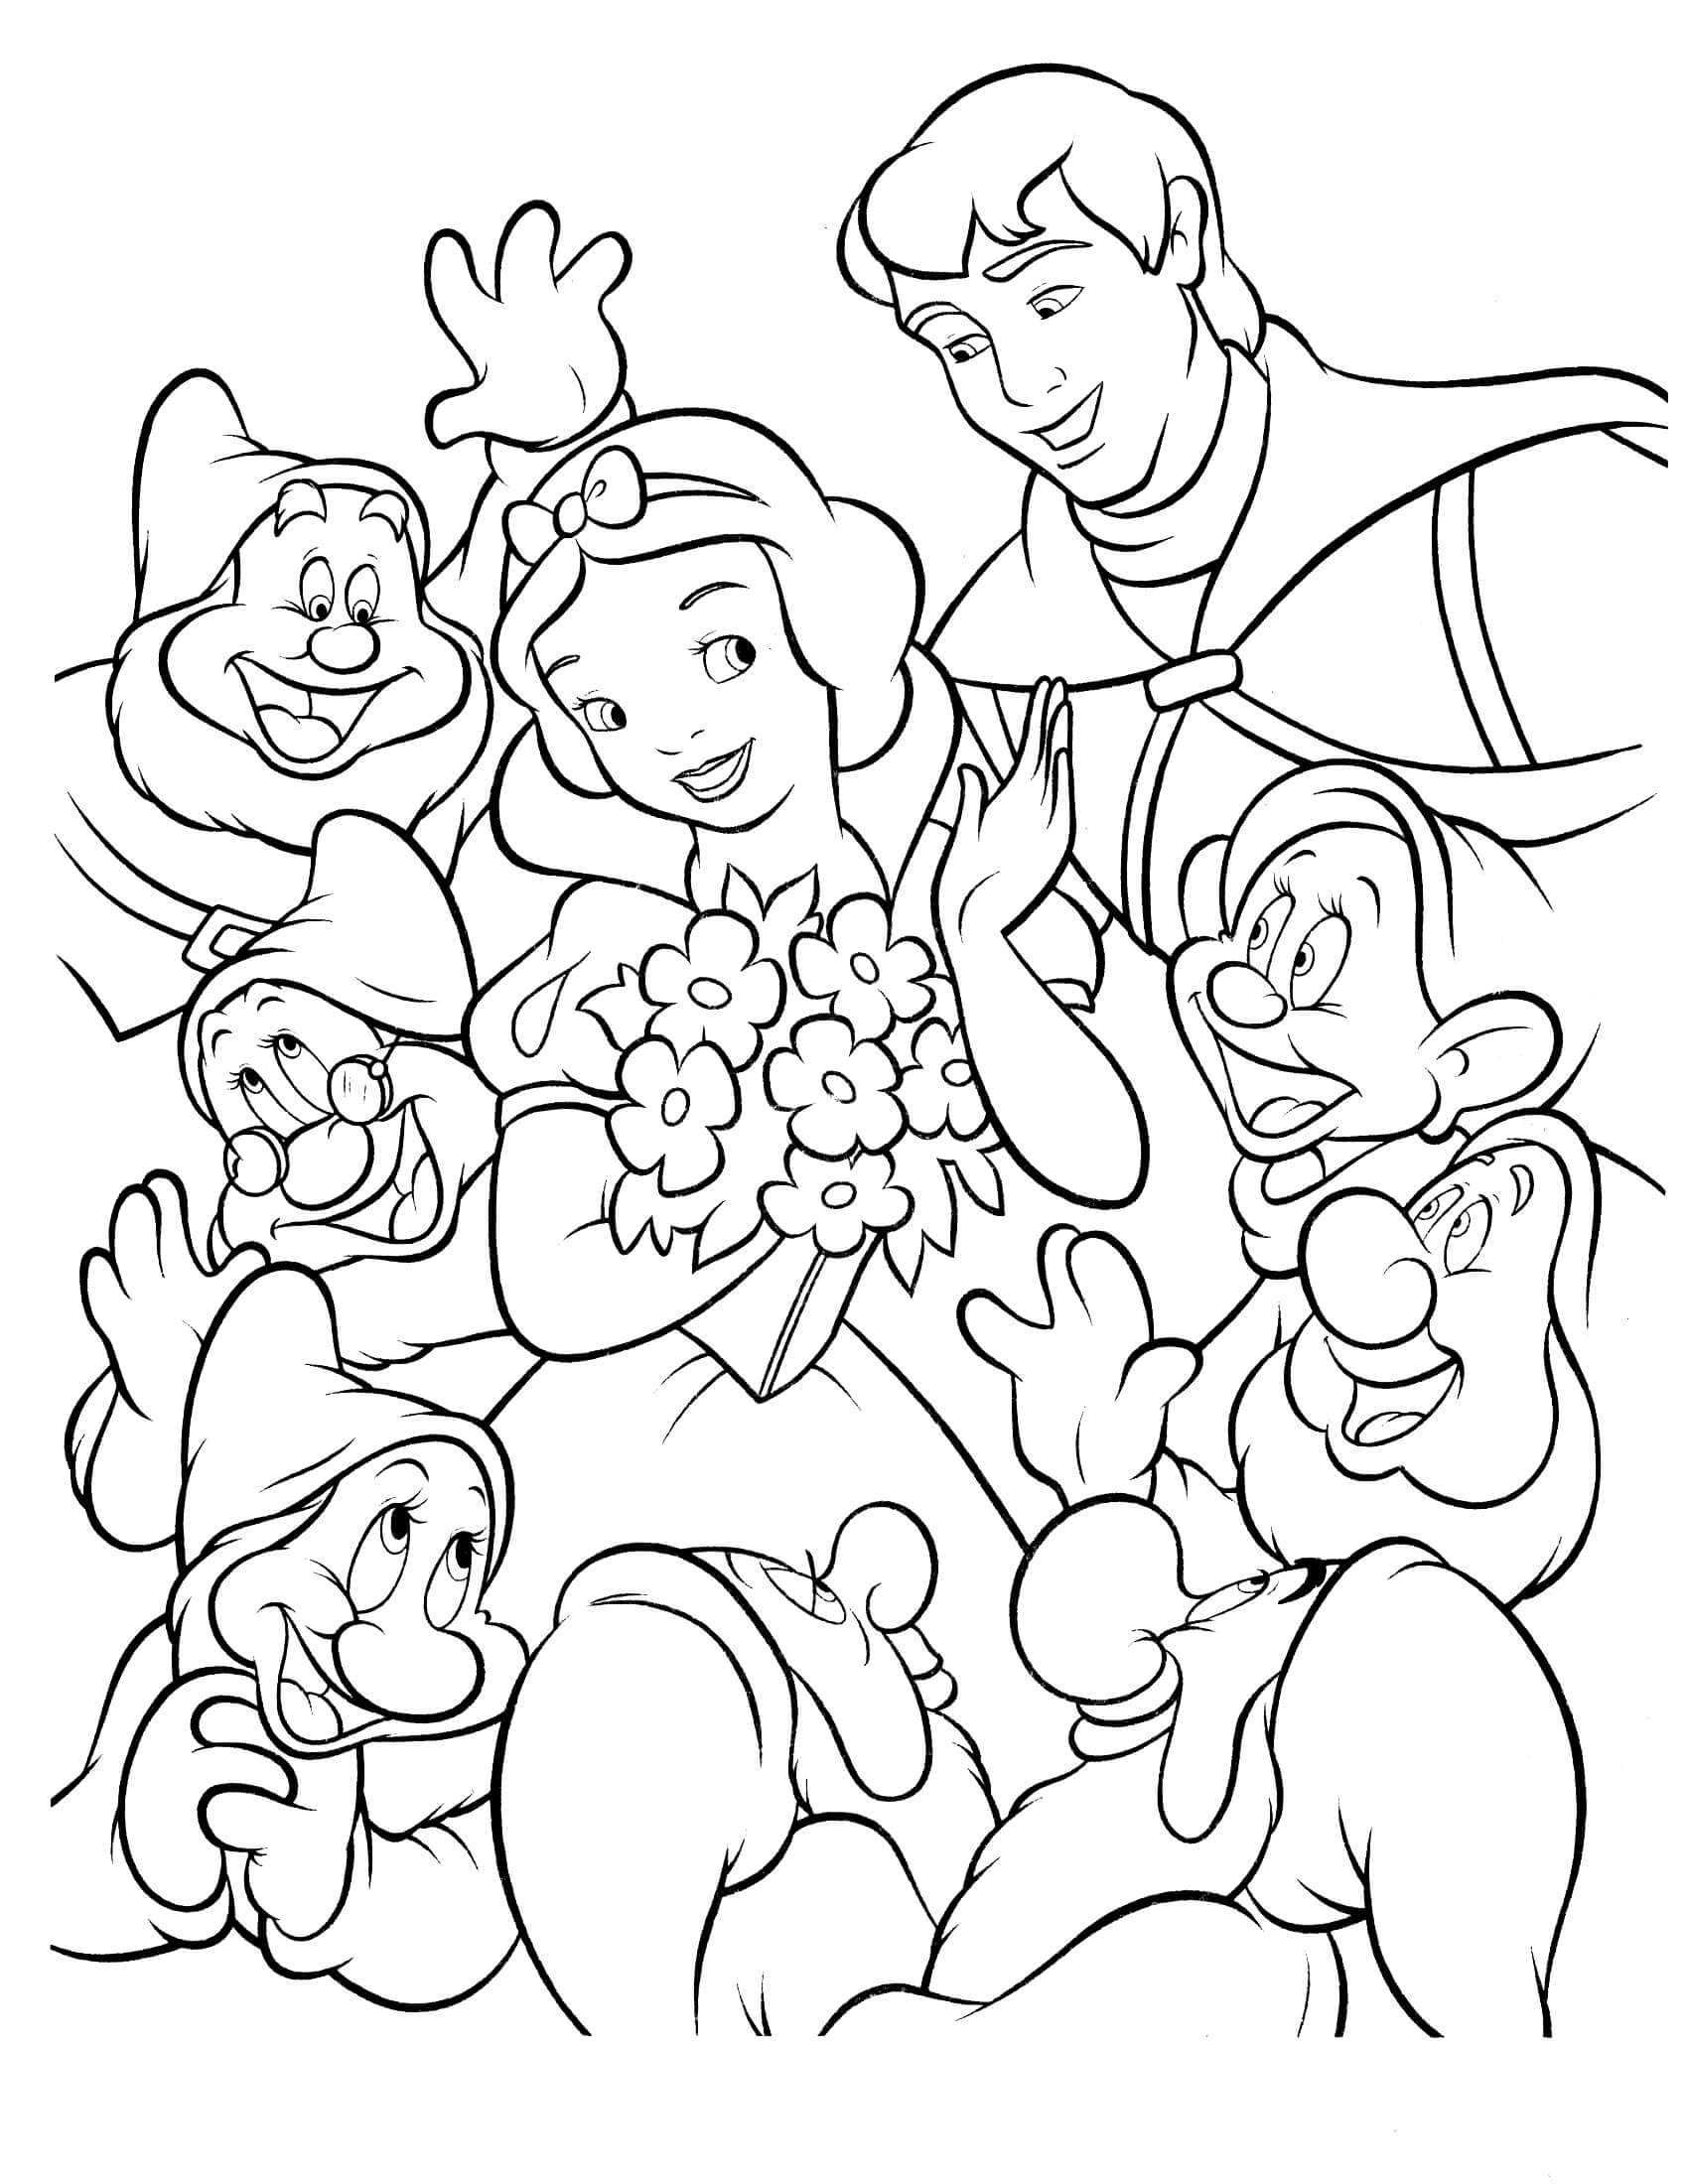 coloring picture of snow white snow white coloring pages best coloring pages for kids picture coloring snow of white